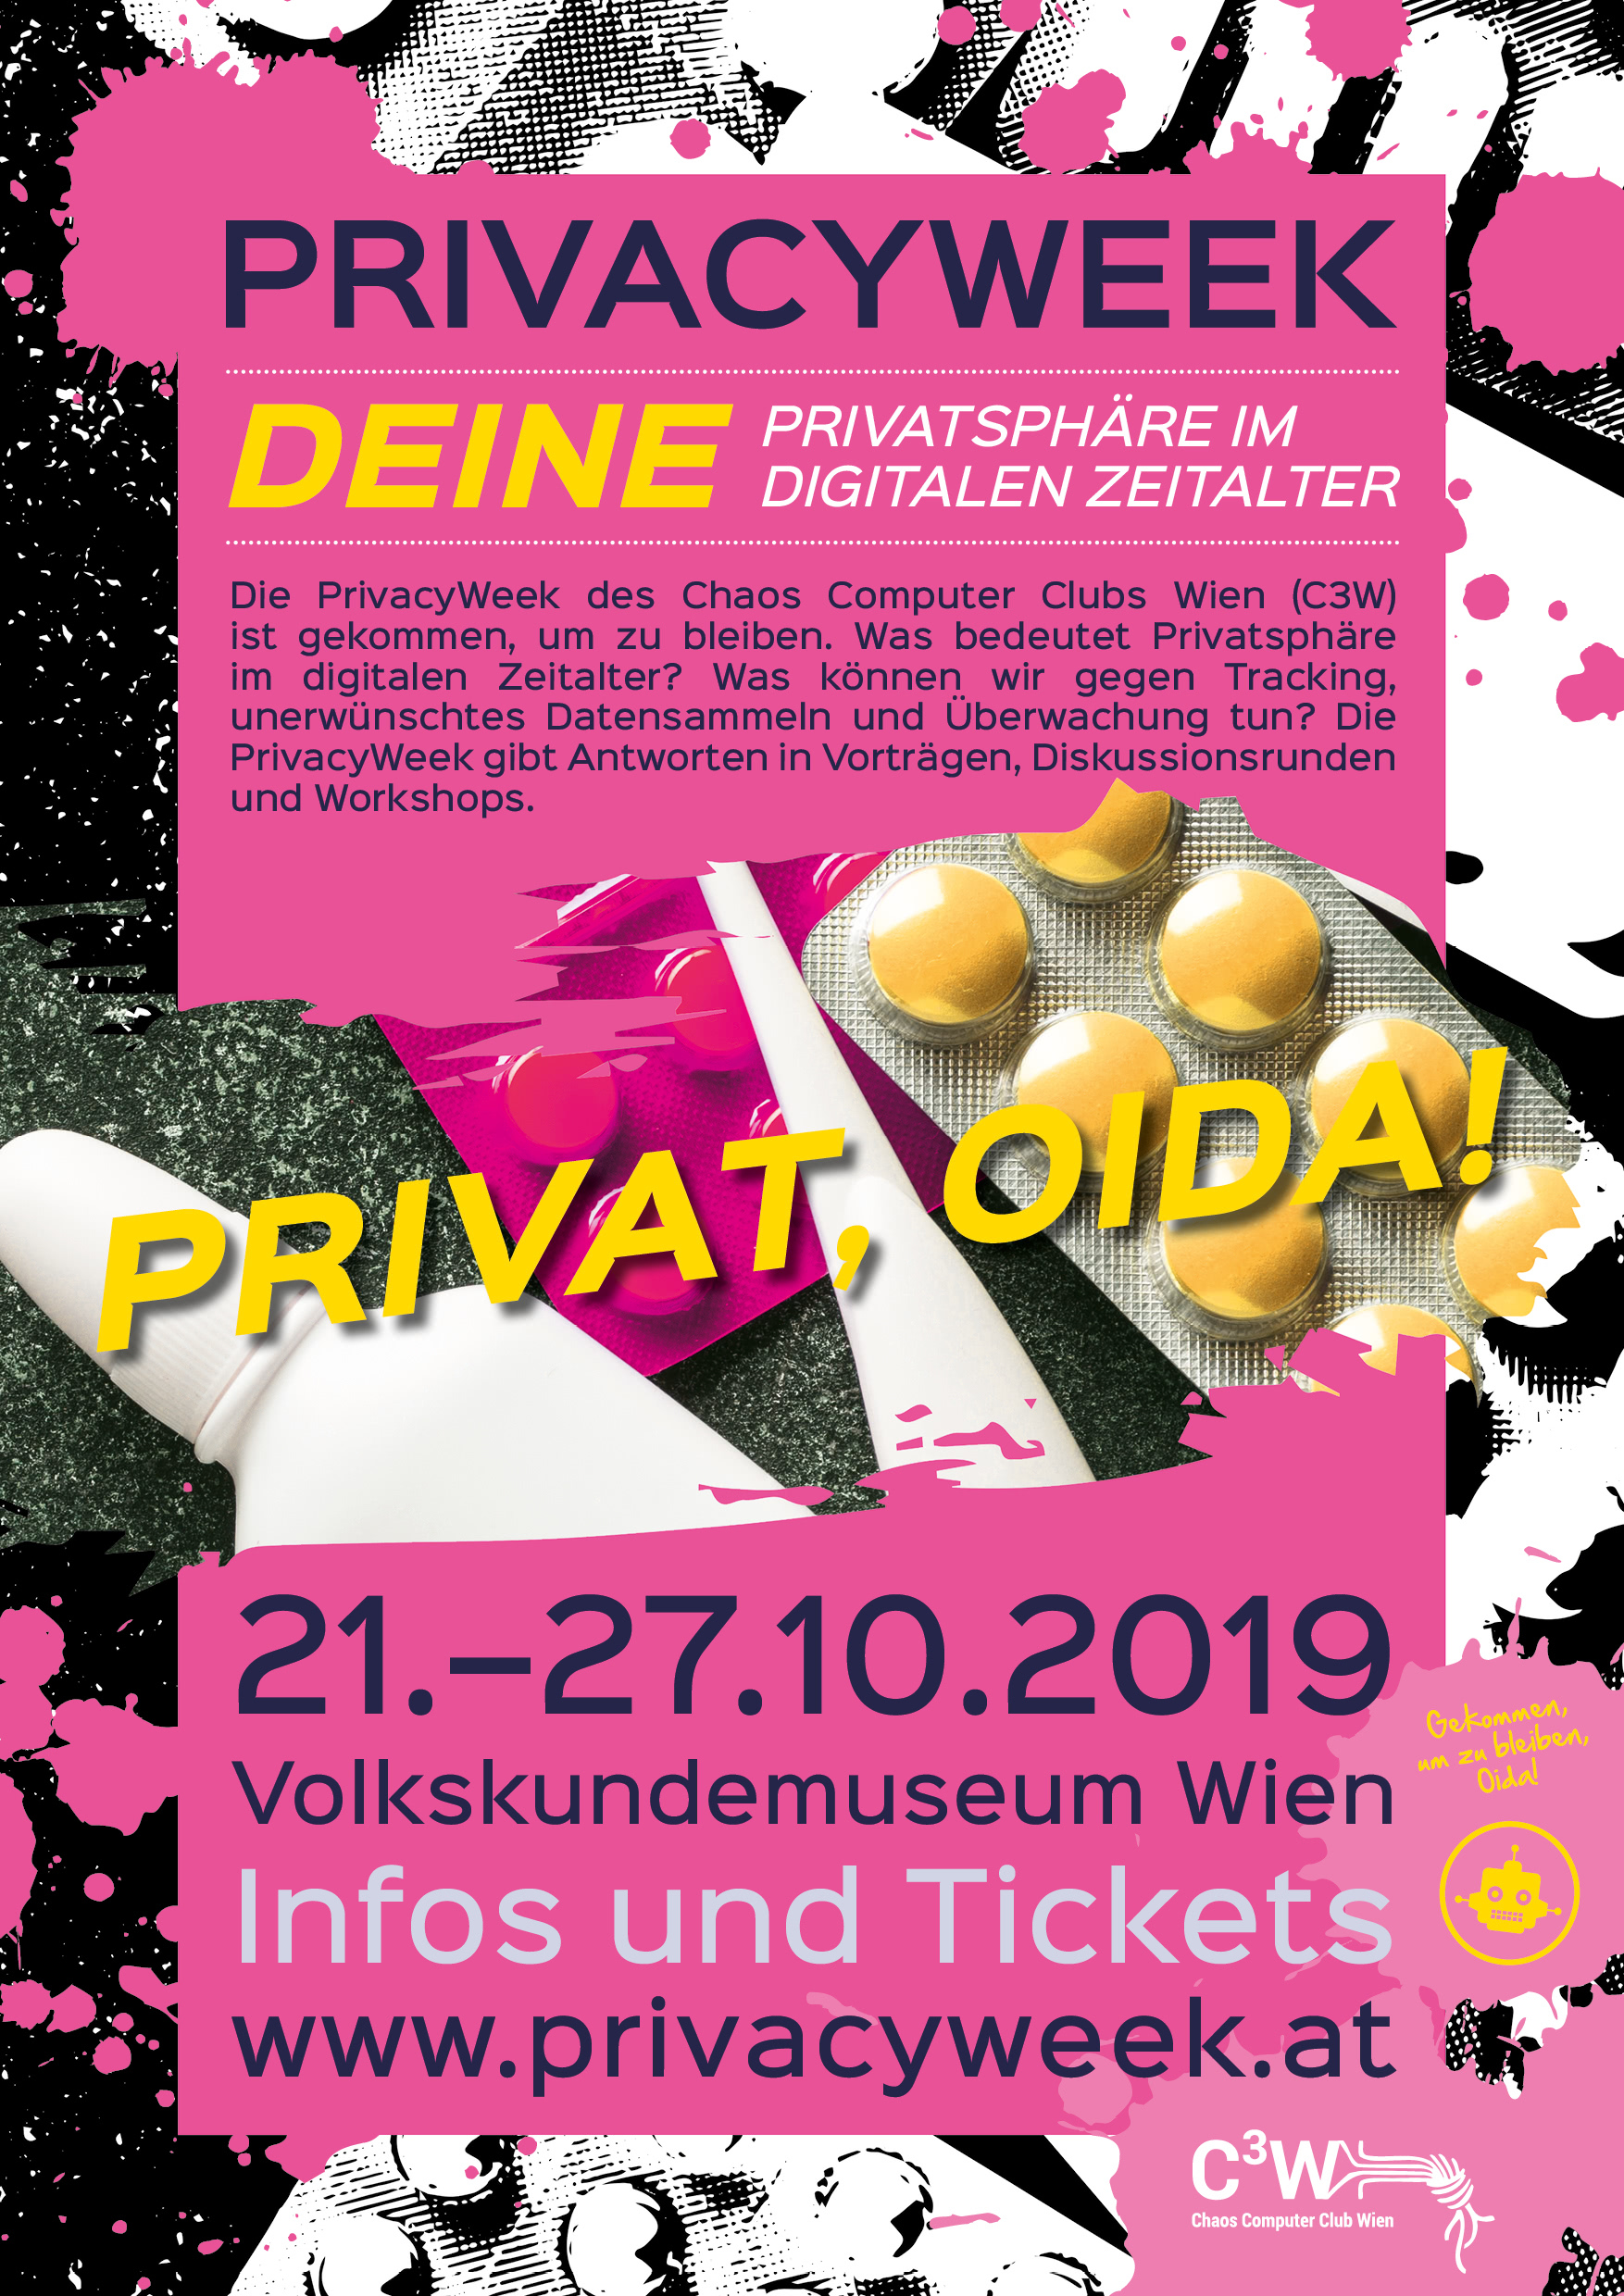 Plakat PrivacyWeek 2019: Privat, Oida!